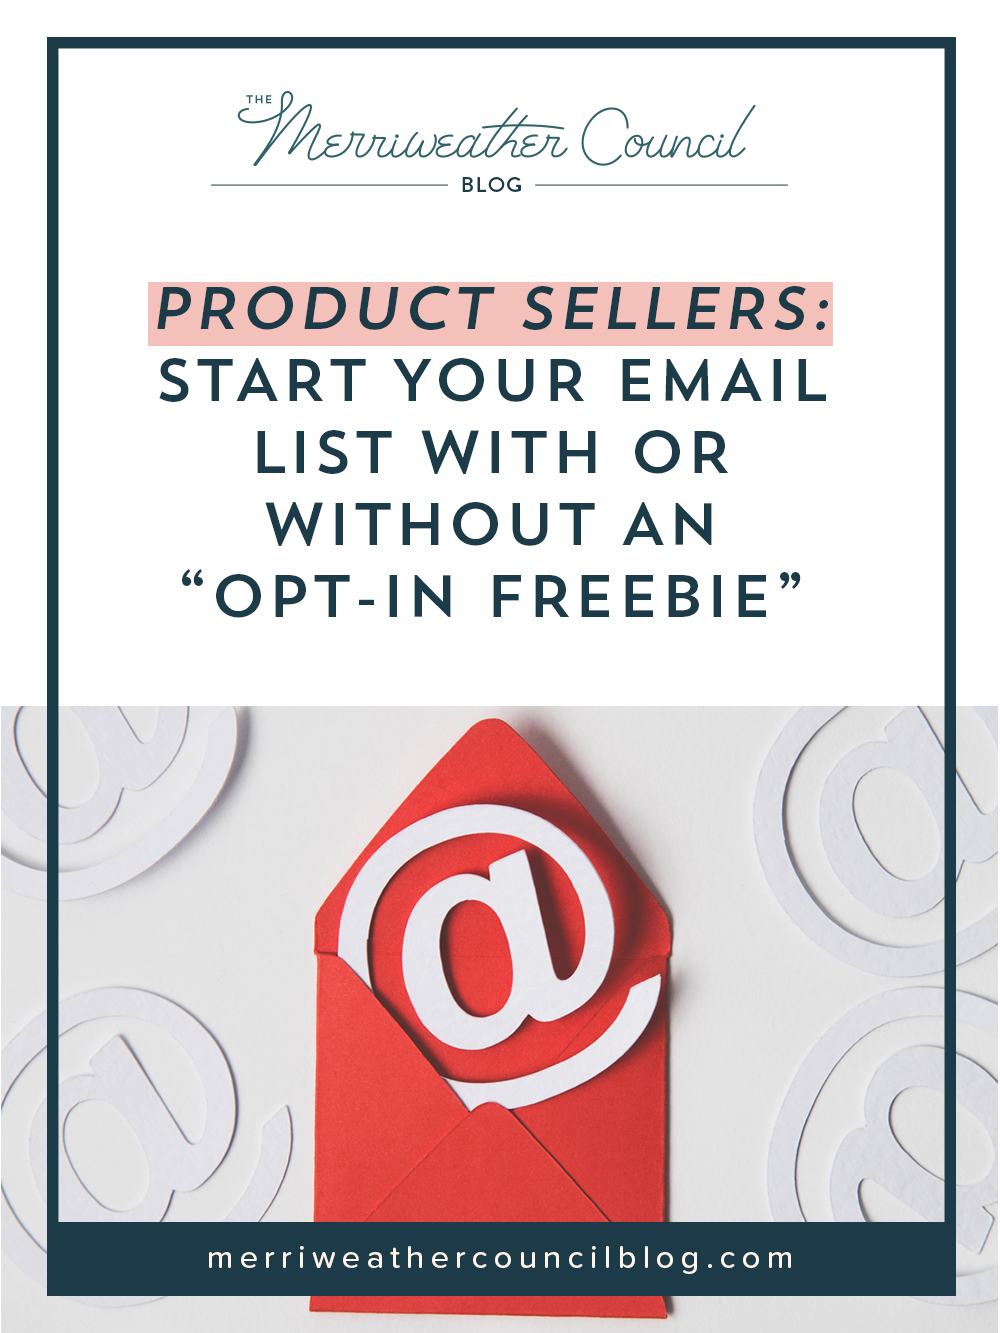 """Product Sellers: Start Your Email List with or WITHOUT an """"opt-in freebie""""   the merriweather council blog"""